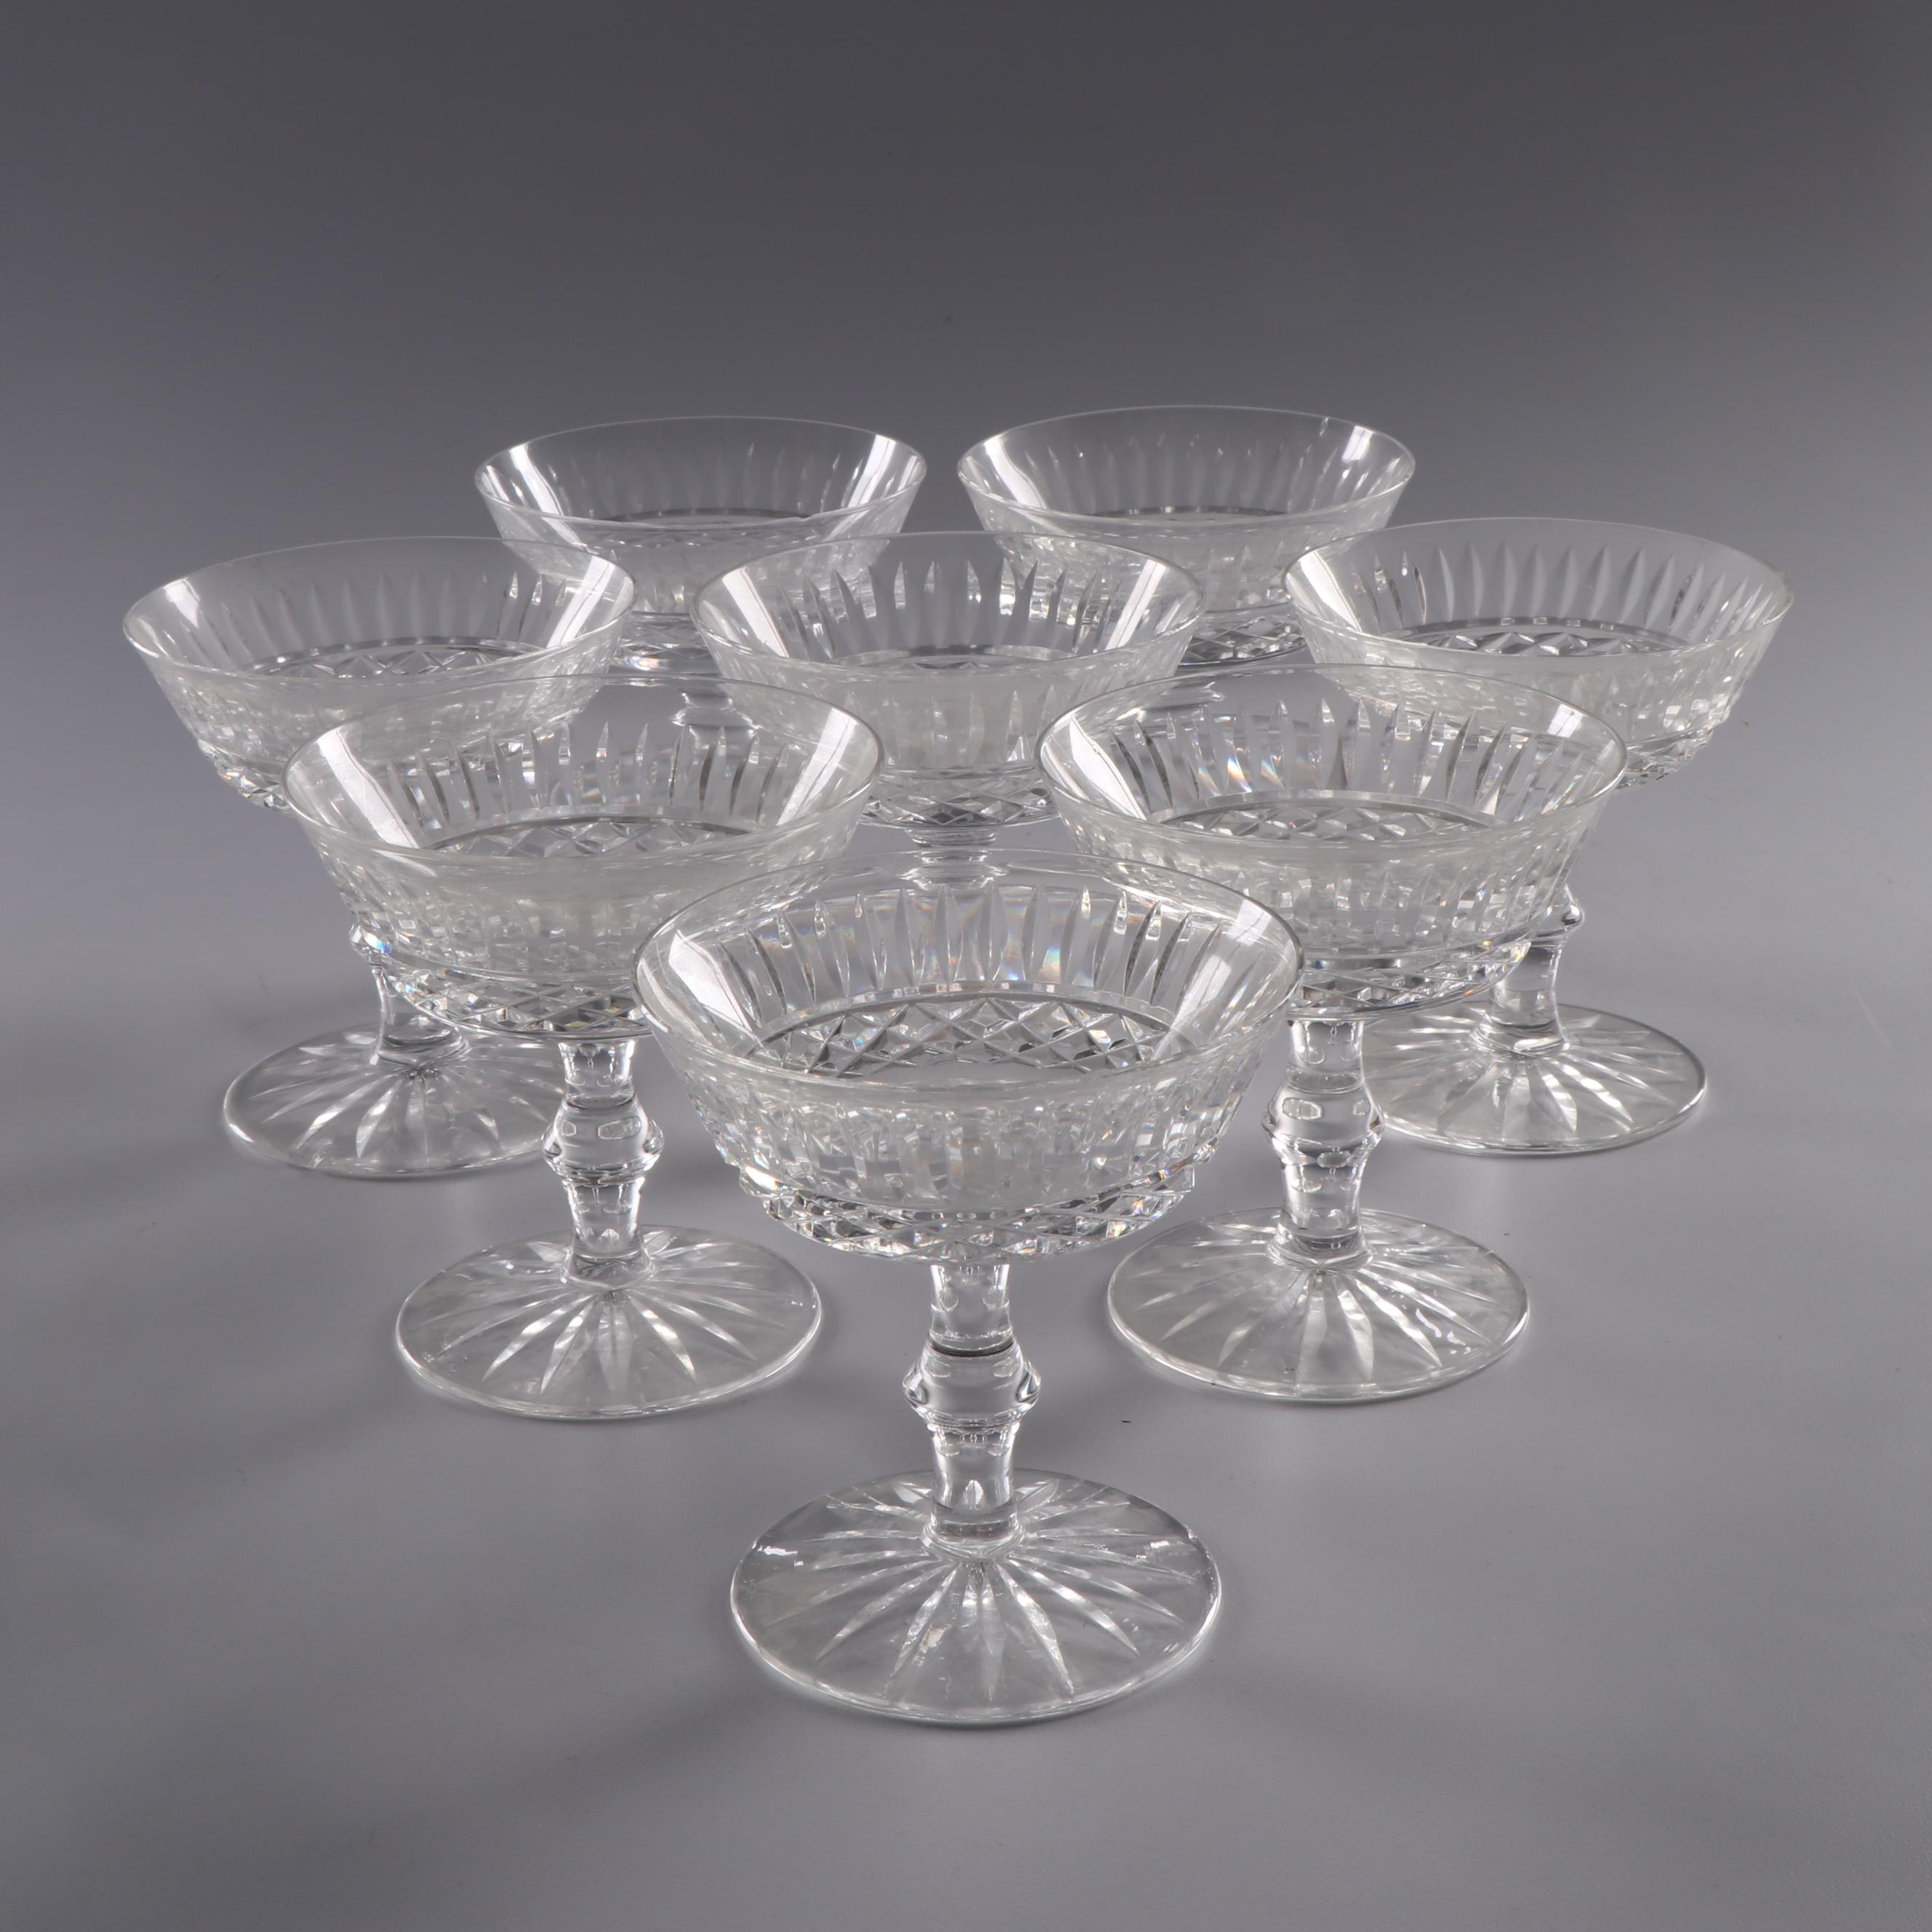 Waterford Crystal Champagne Coupes Set